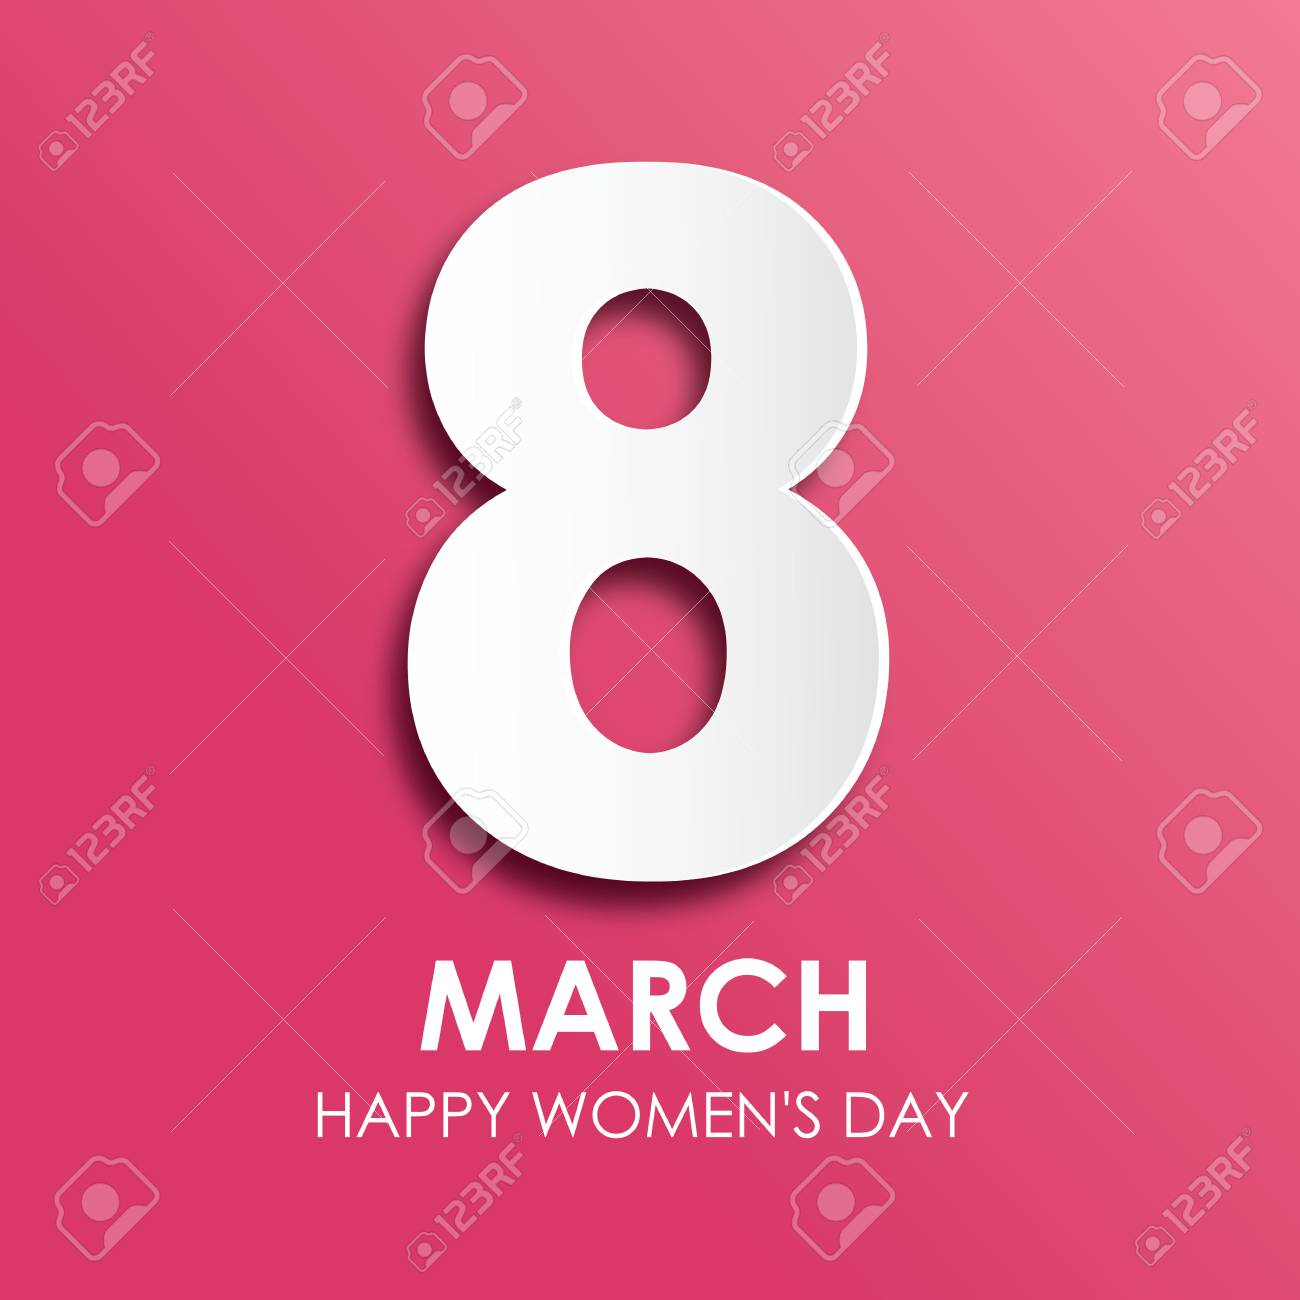 8 March Happy Womens Day Greeting Card In Paper Style Royalty Fri